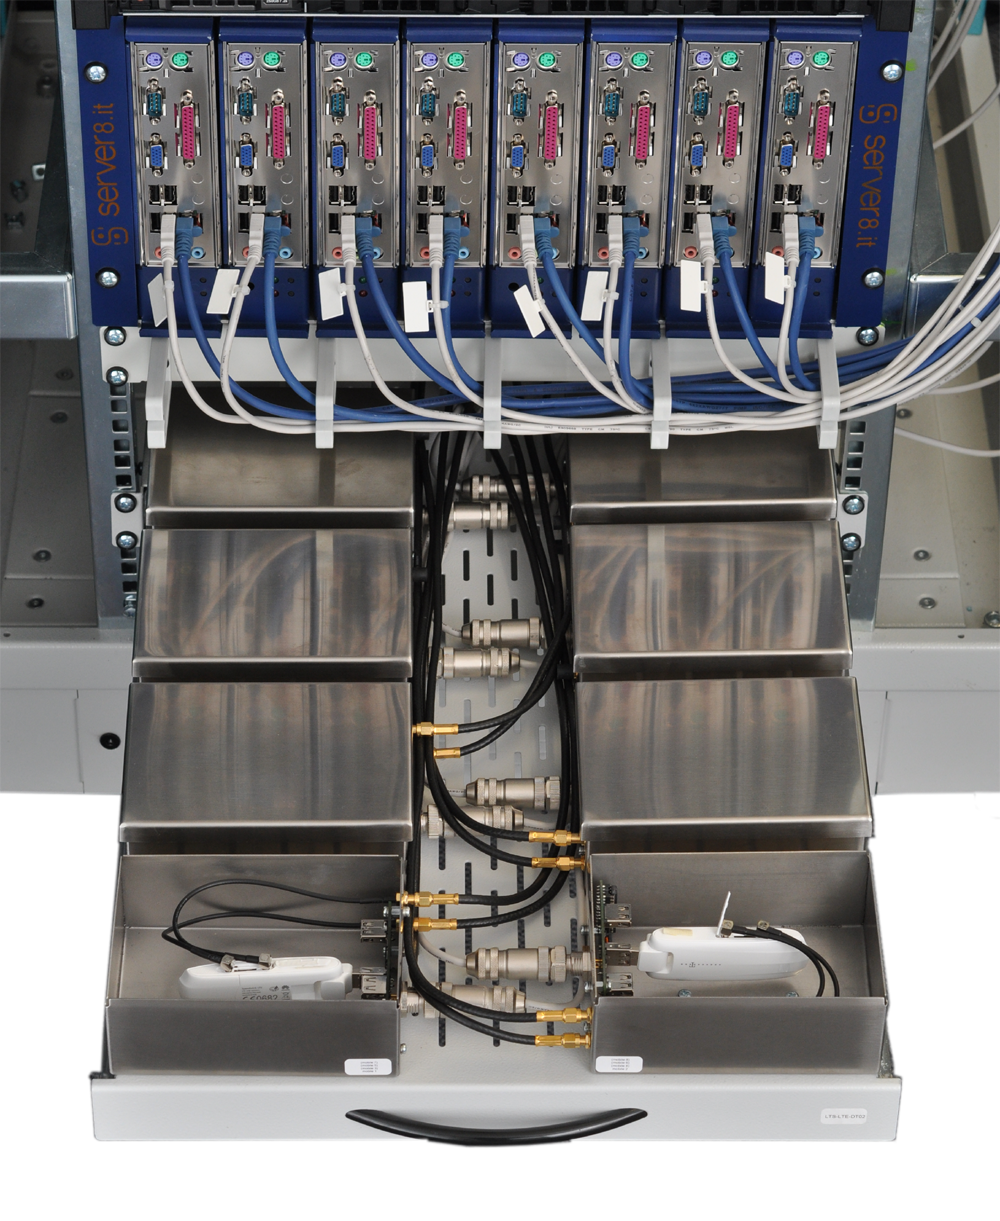 10 years experience in mobile network testingspace saving individual shielding up to 8 rf guards fit on a rack shelf